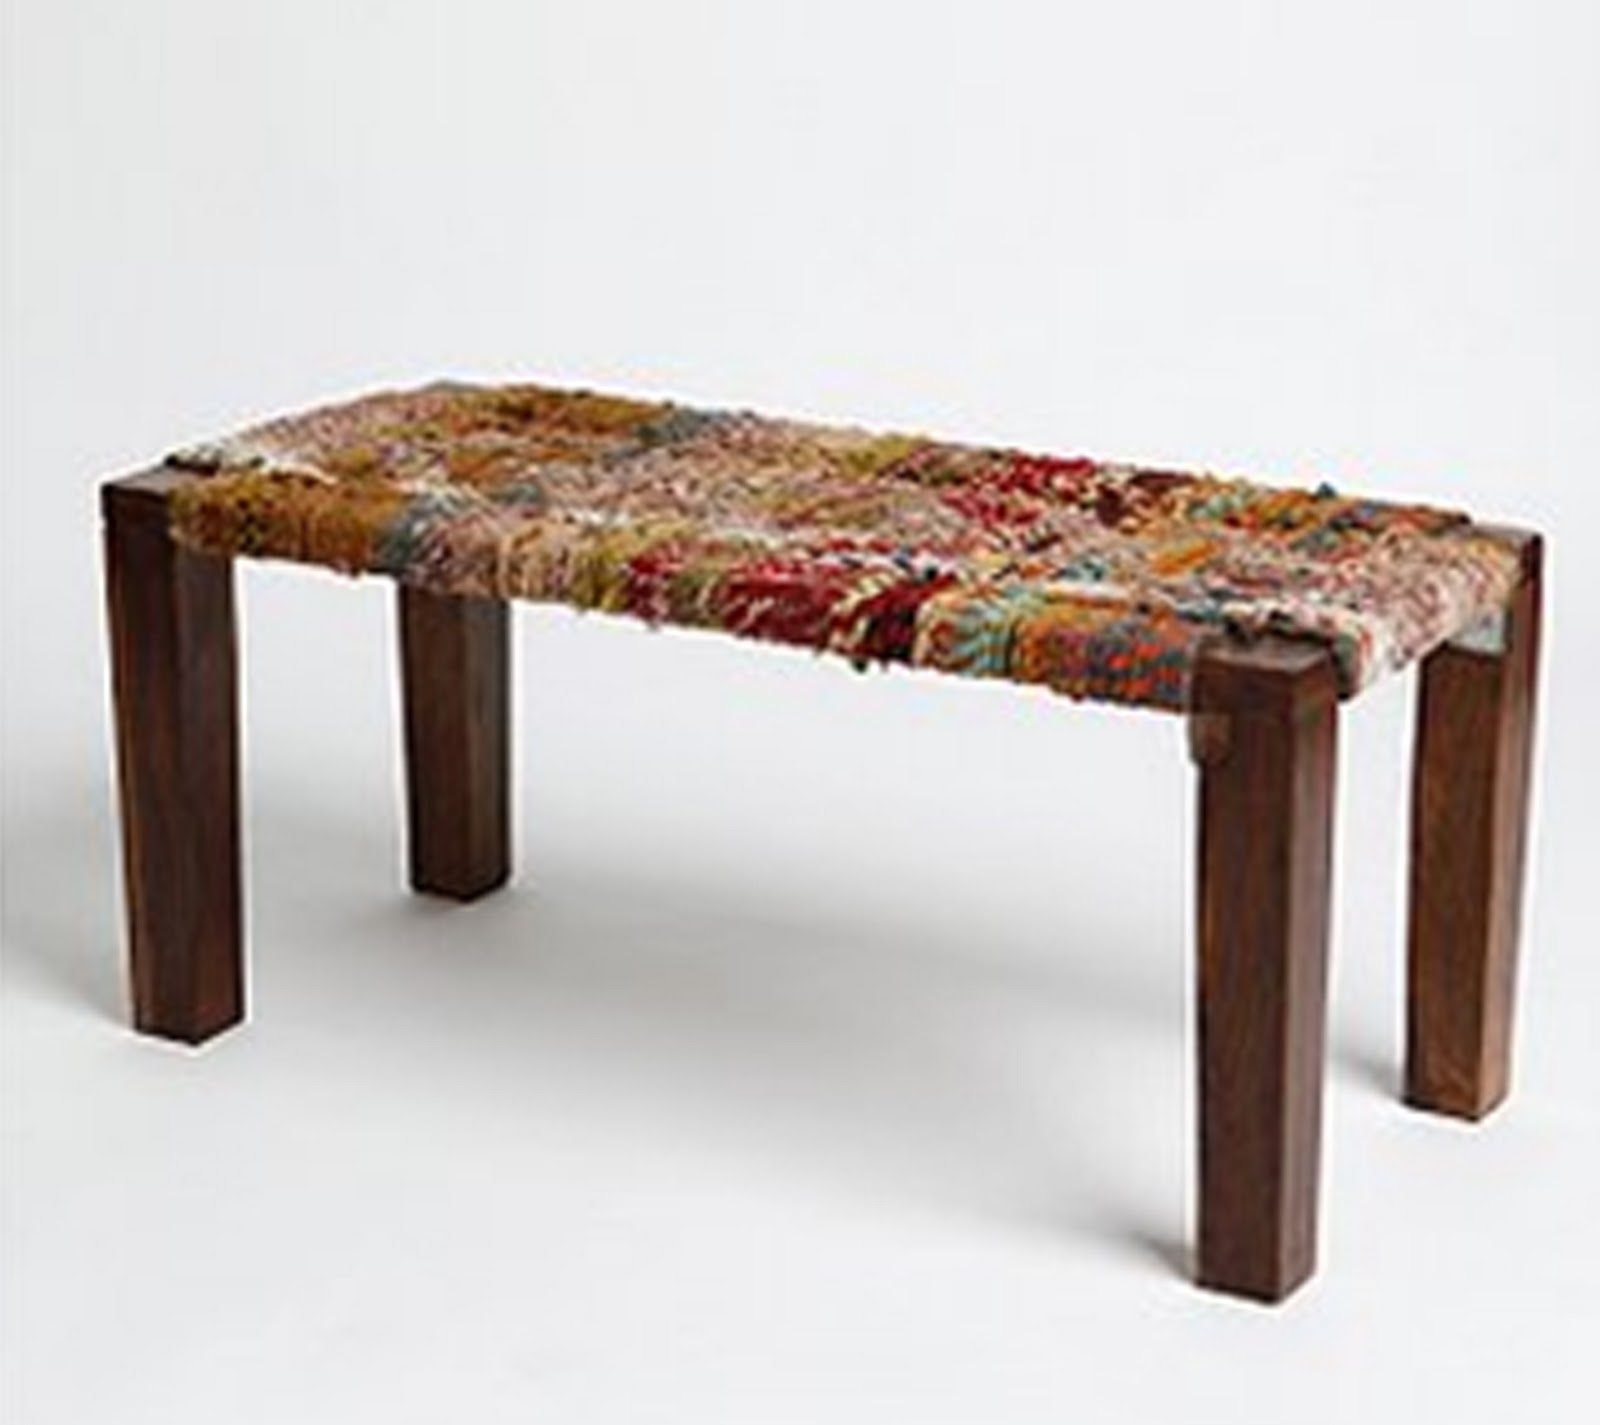 Rg The Shop Library Ludhiana Woven Bench